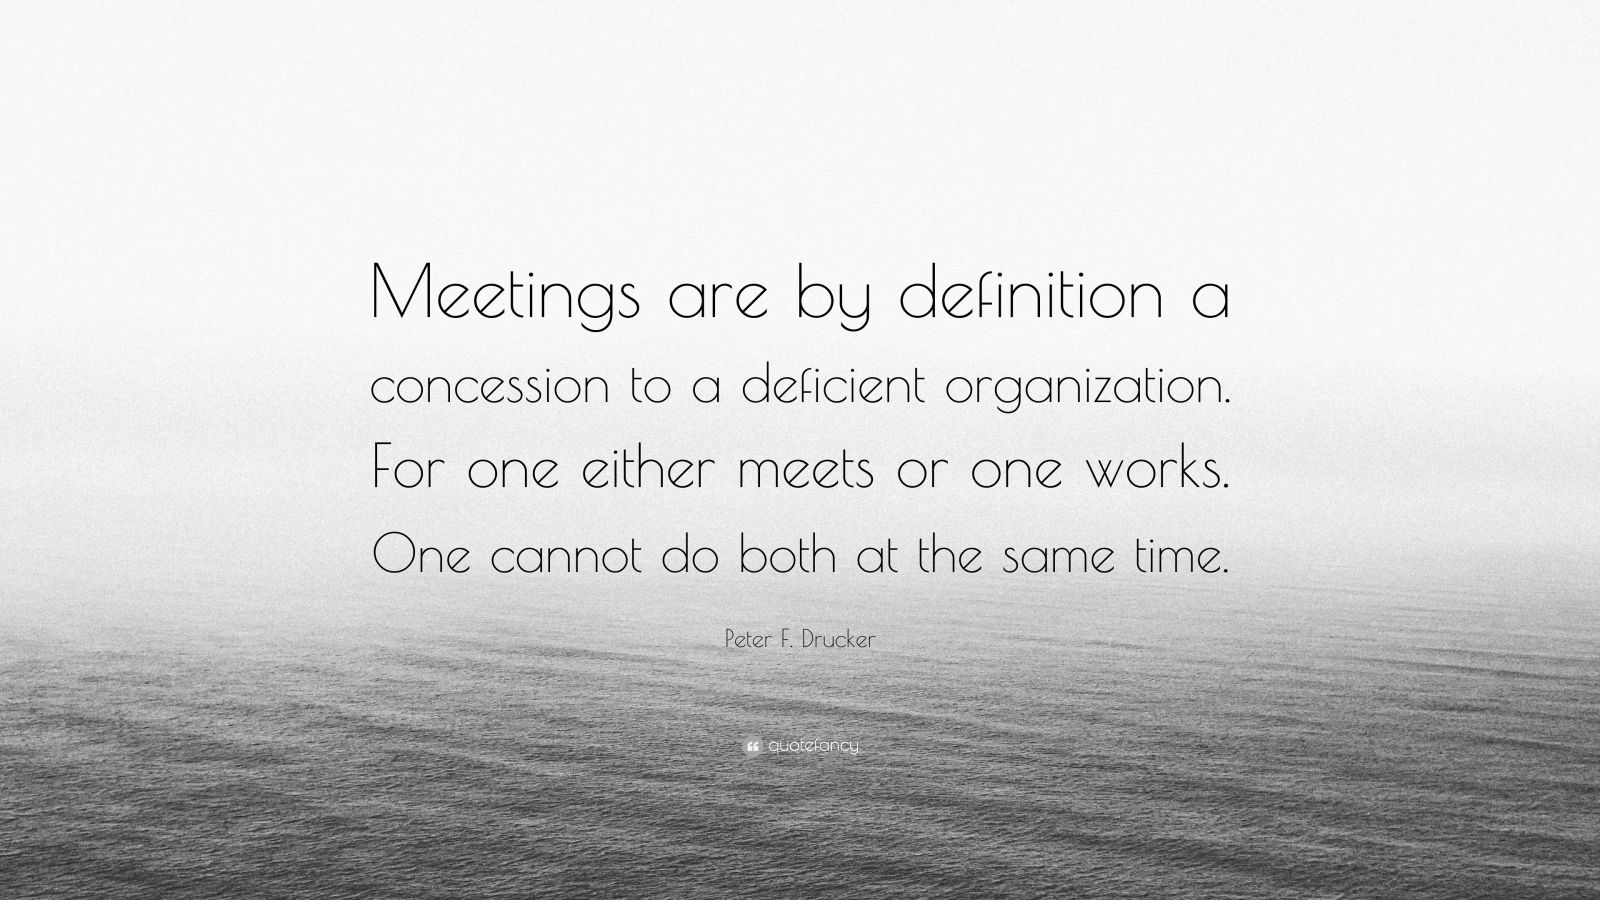 """Peter F. Drucker Quote: """"Meetings are by definition a concession to a deficient organization. For one either meets or one works. One cannot do both at the same time."""""""